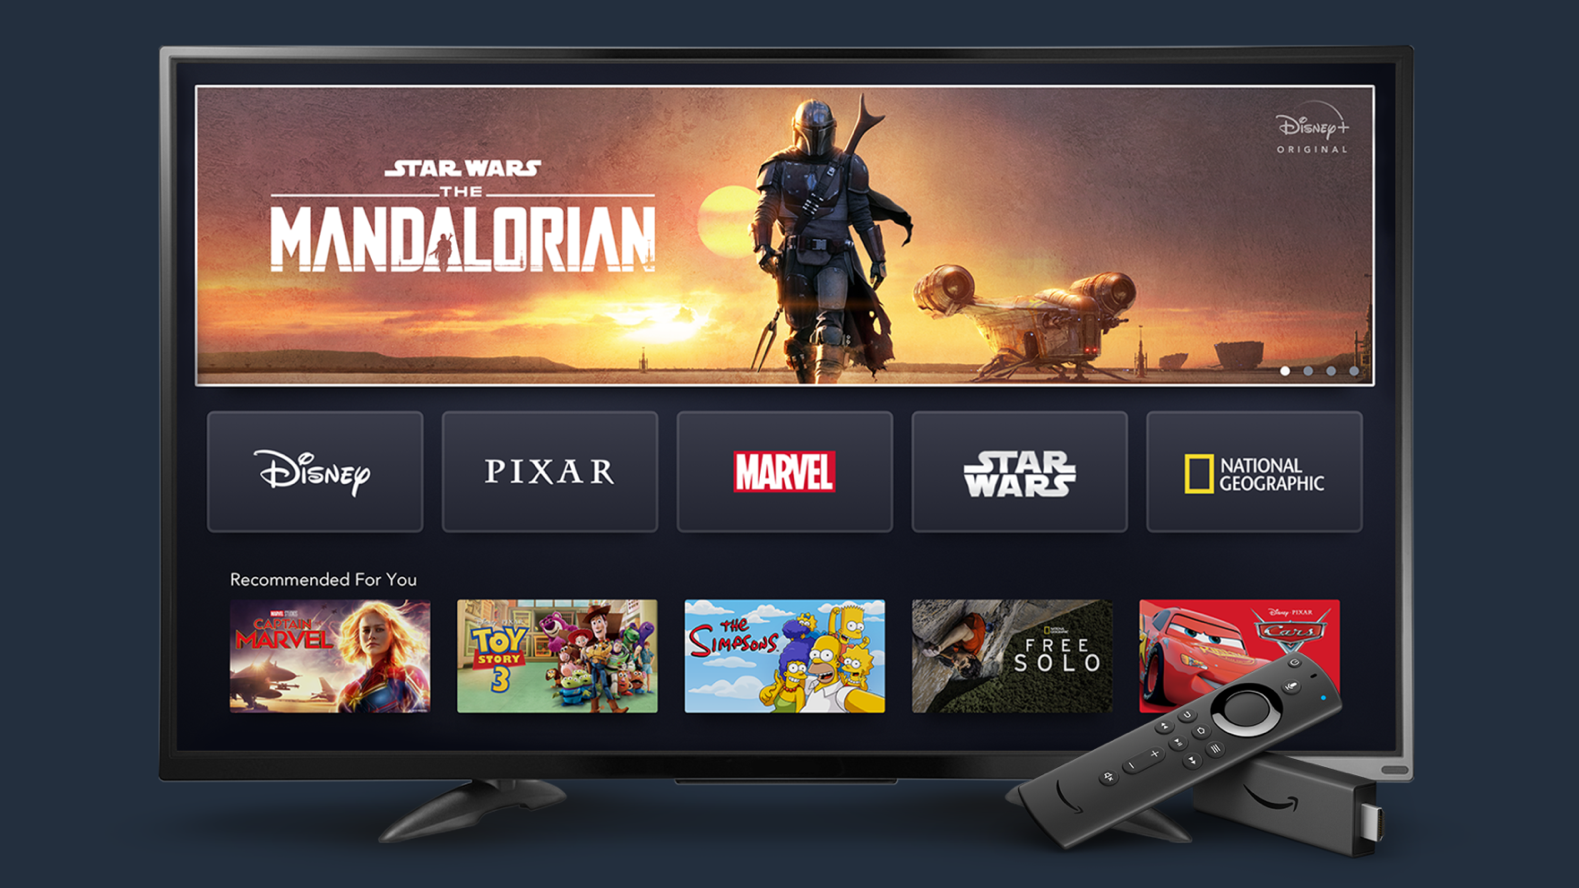 Disney+ Fire Tv